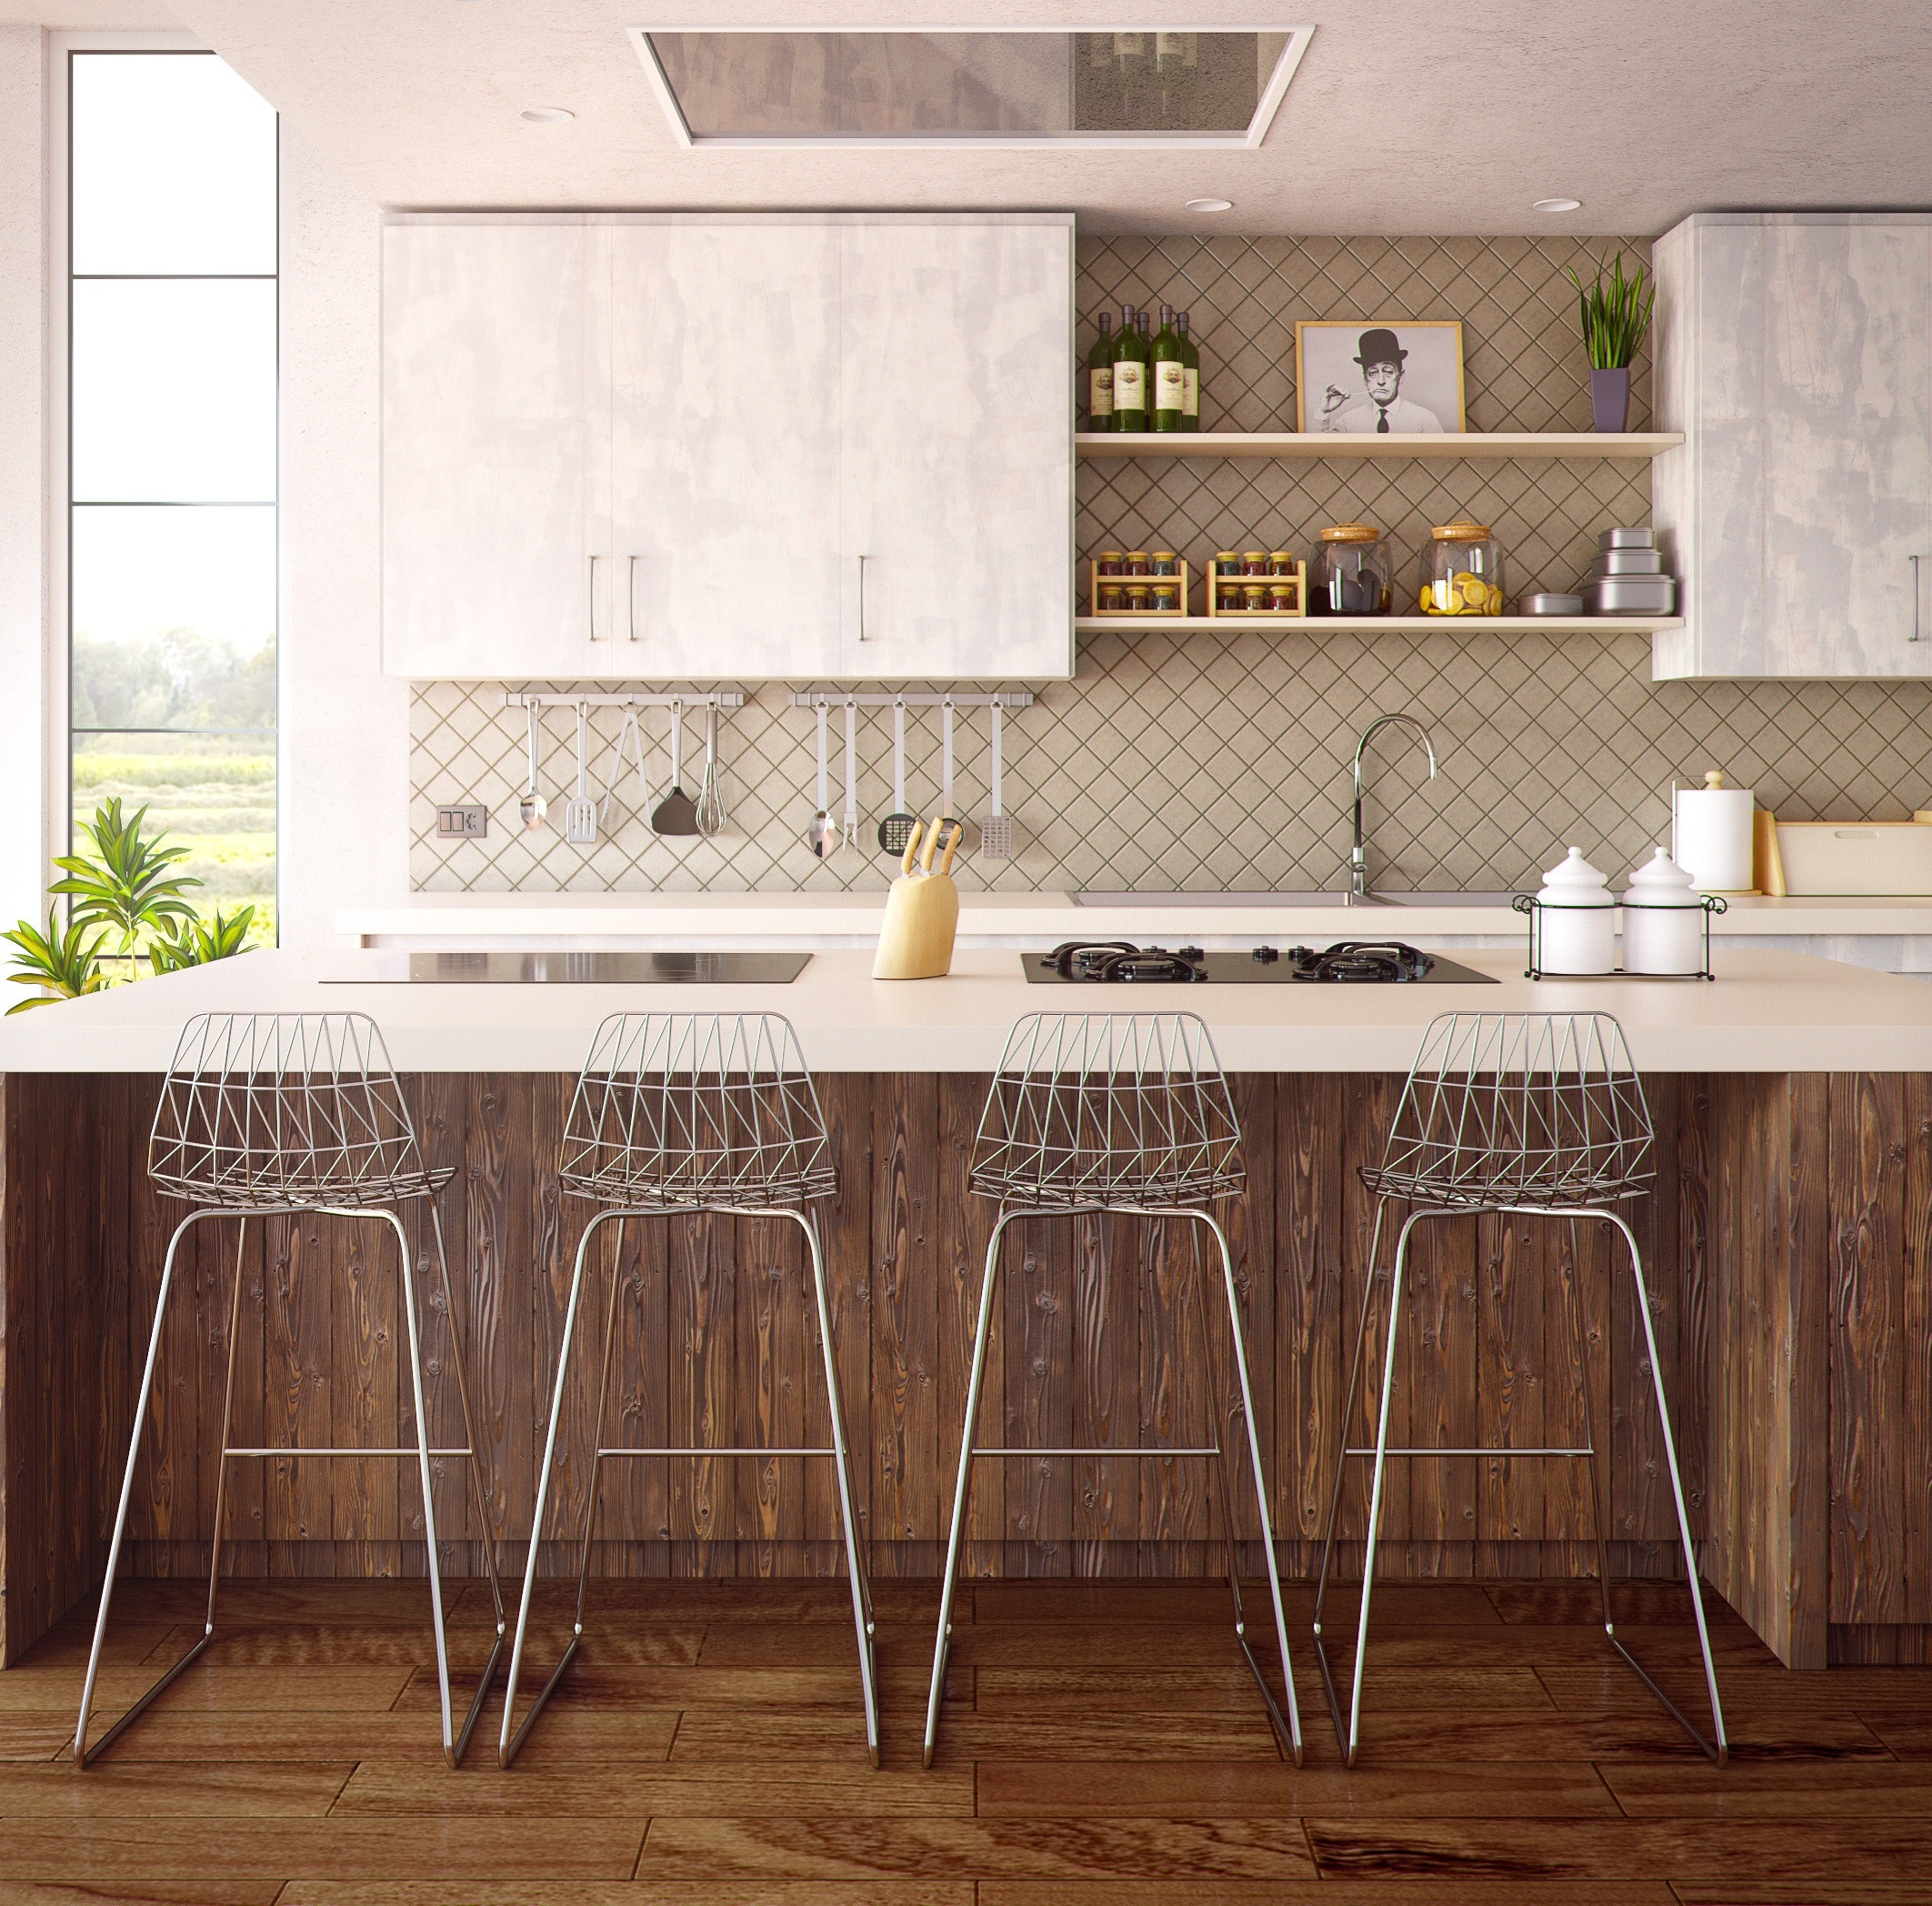 Four Gray Bar Stools in Front of Kitchen Countertop · Free ...